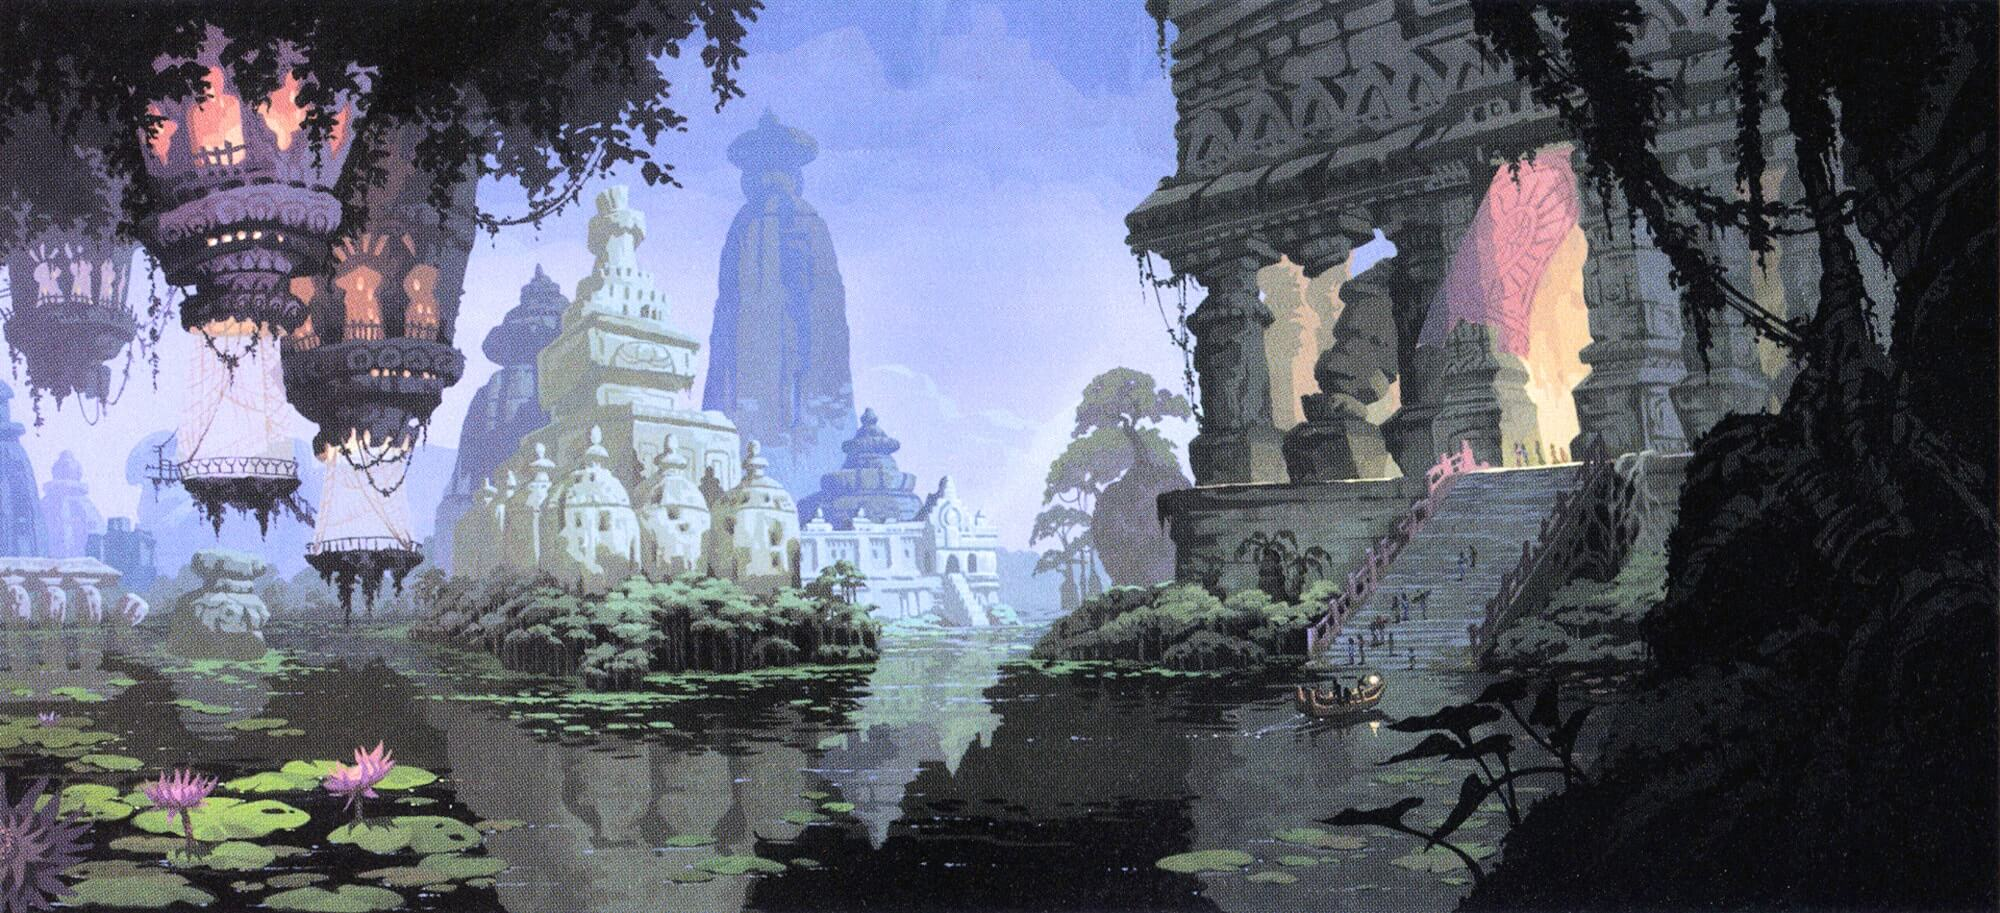 Concept Art From Disney's Atlantis the Lost Empire